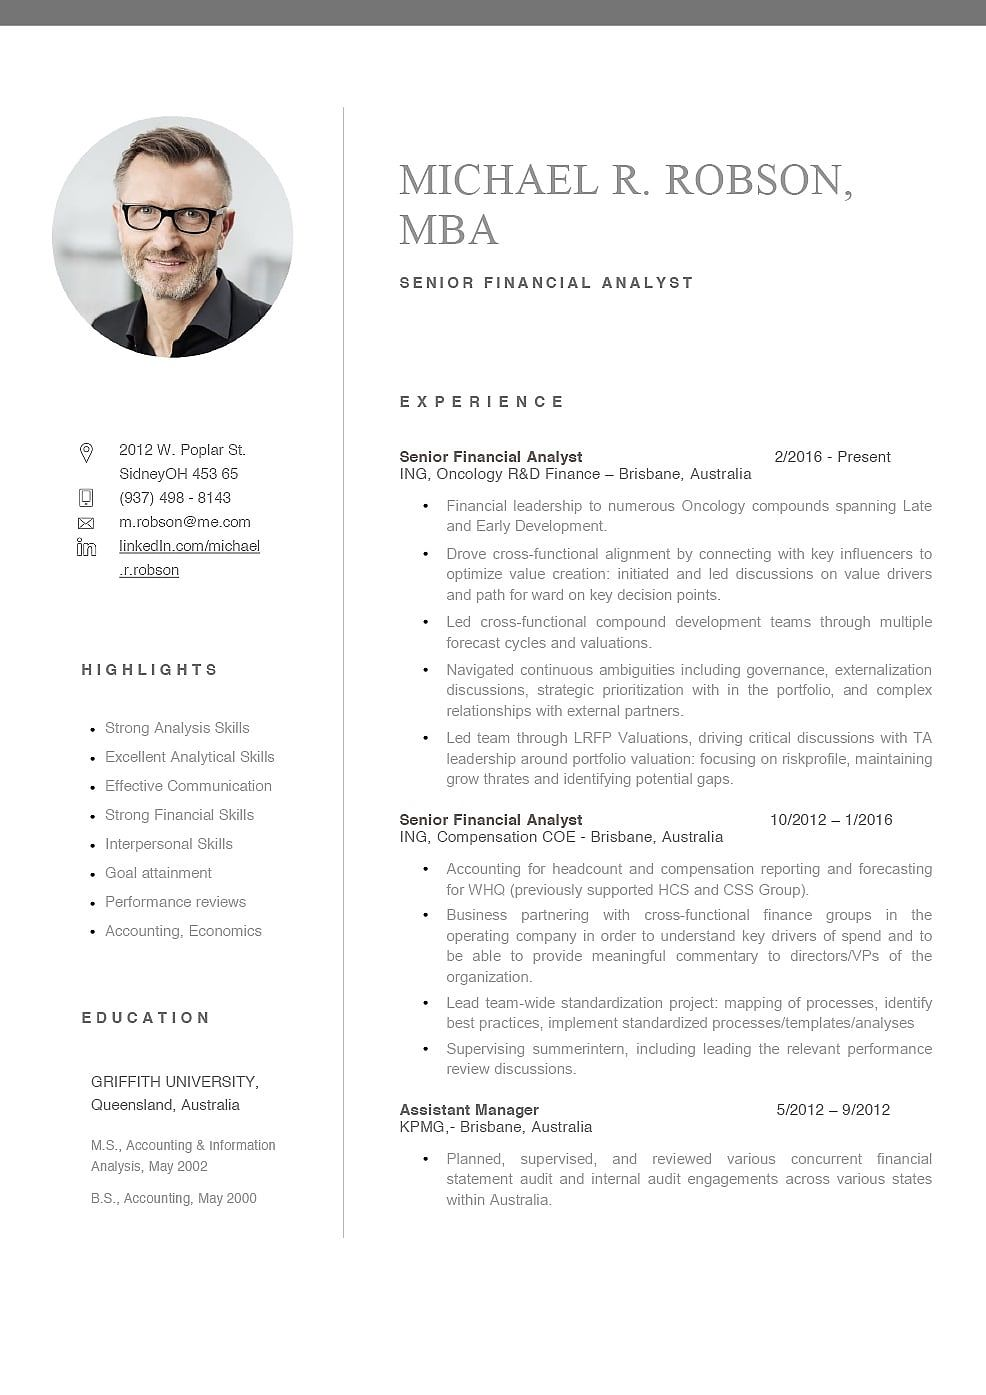 Resume Template Australia Best In 2020 With Images Basic